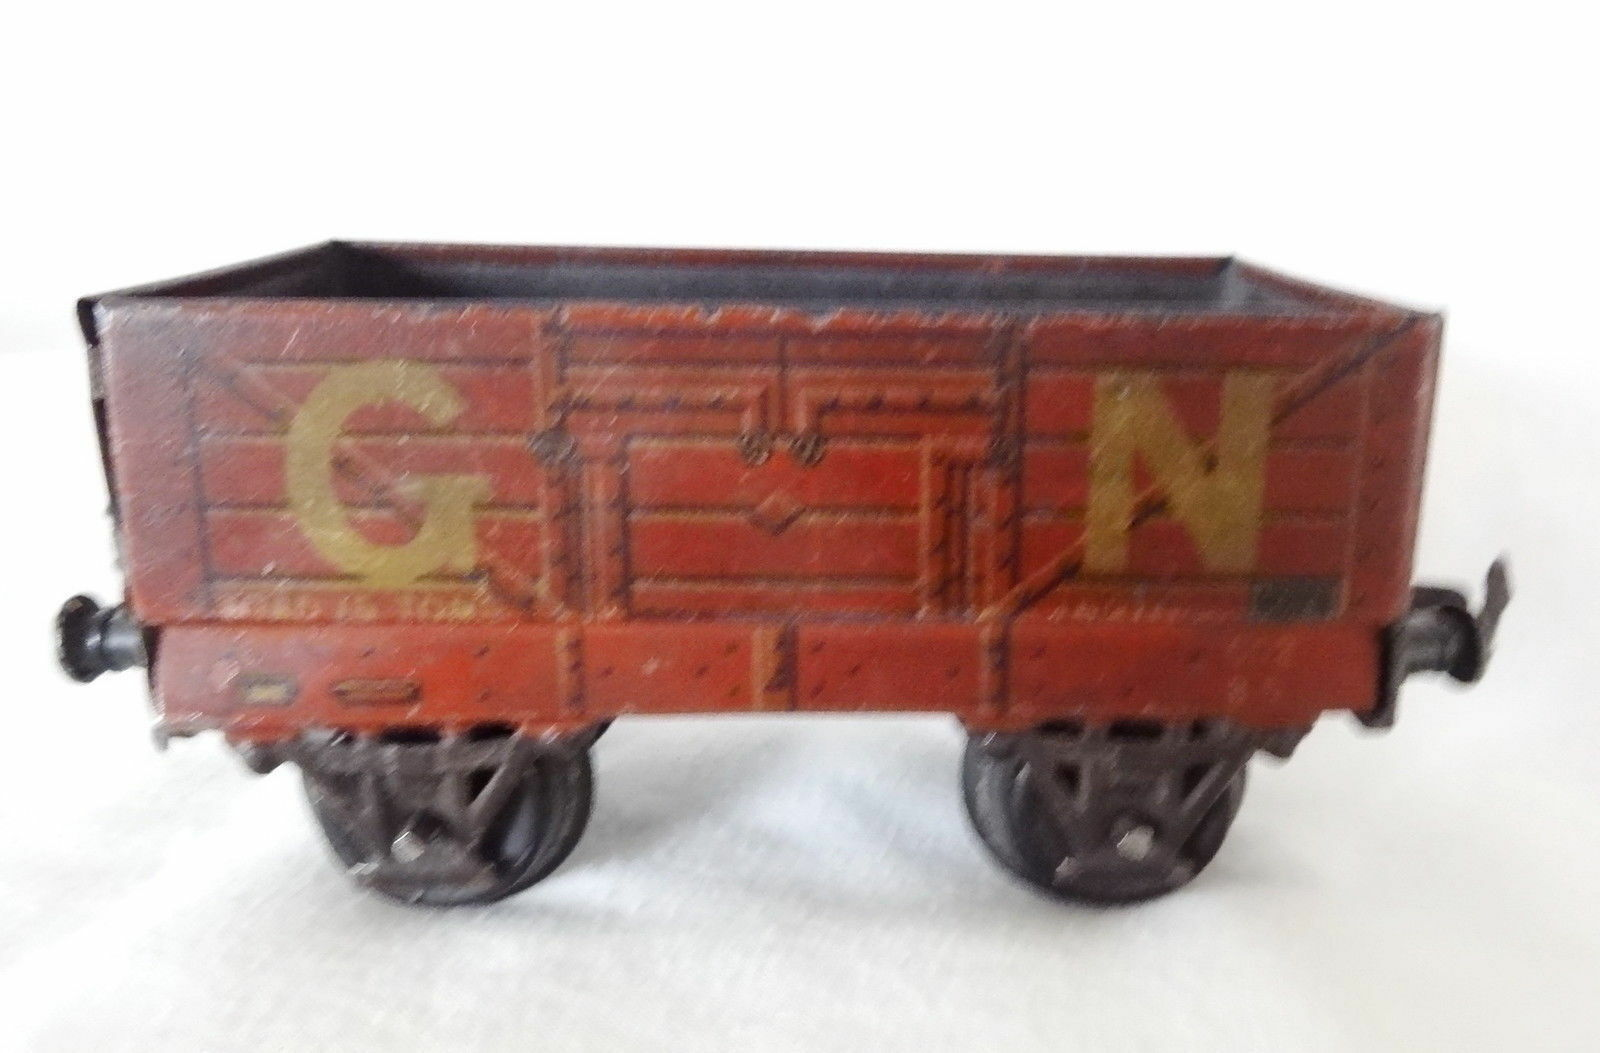 001T  Vintage Bing O-Messgerät Gn Offen Waggon